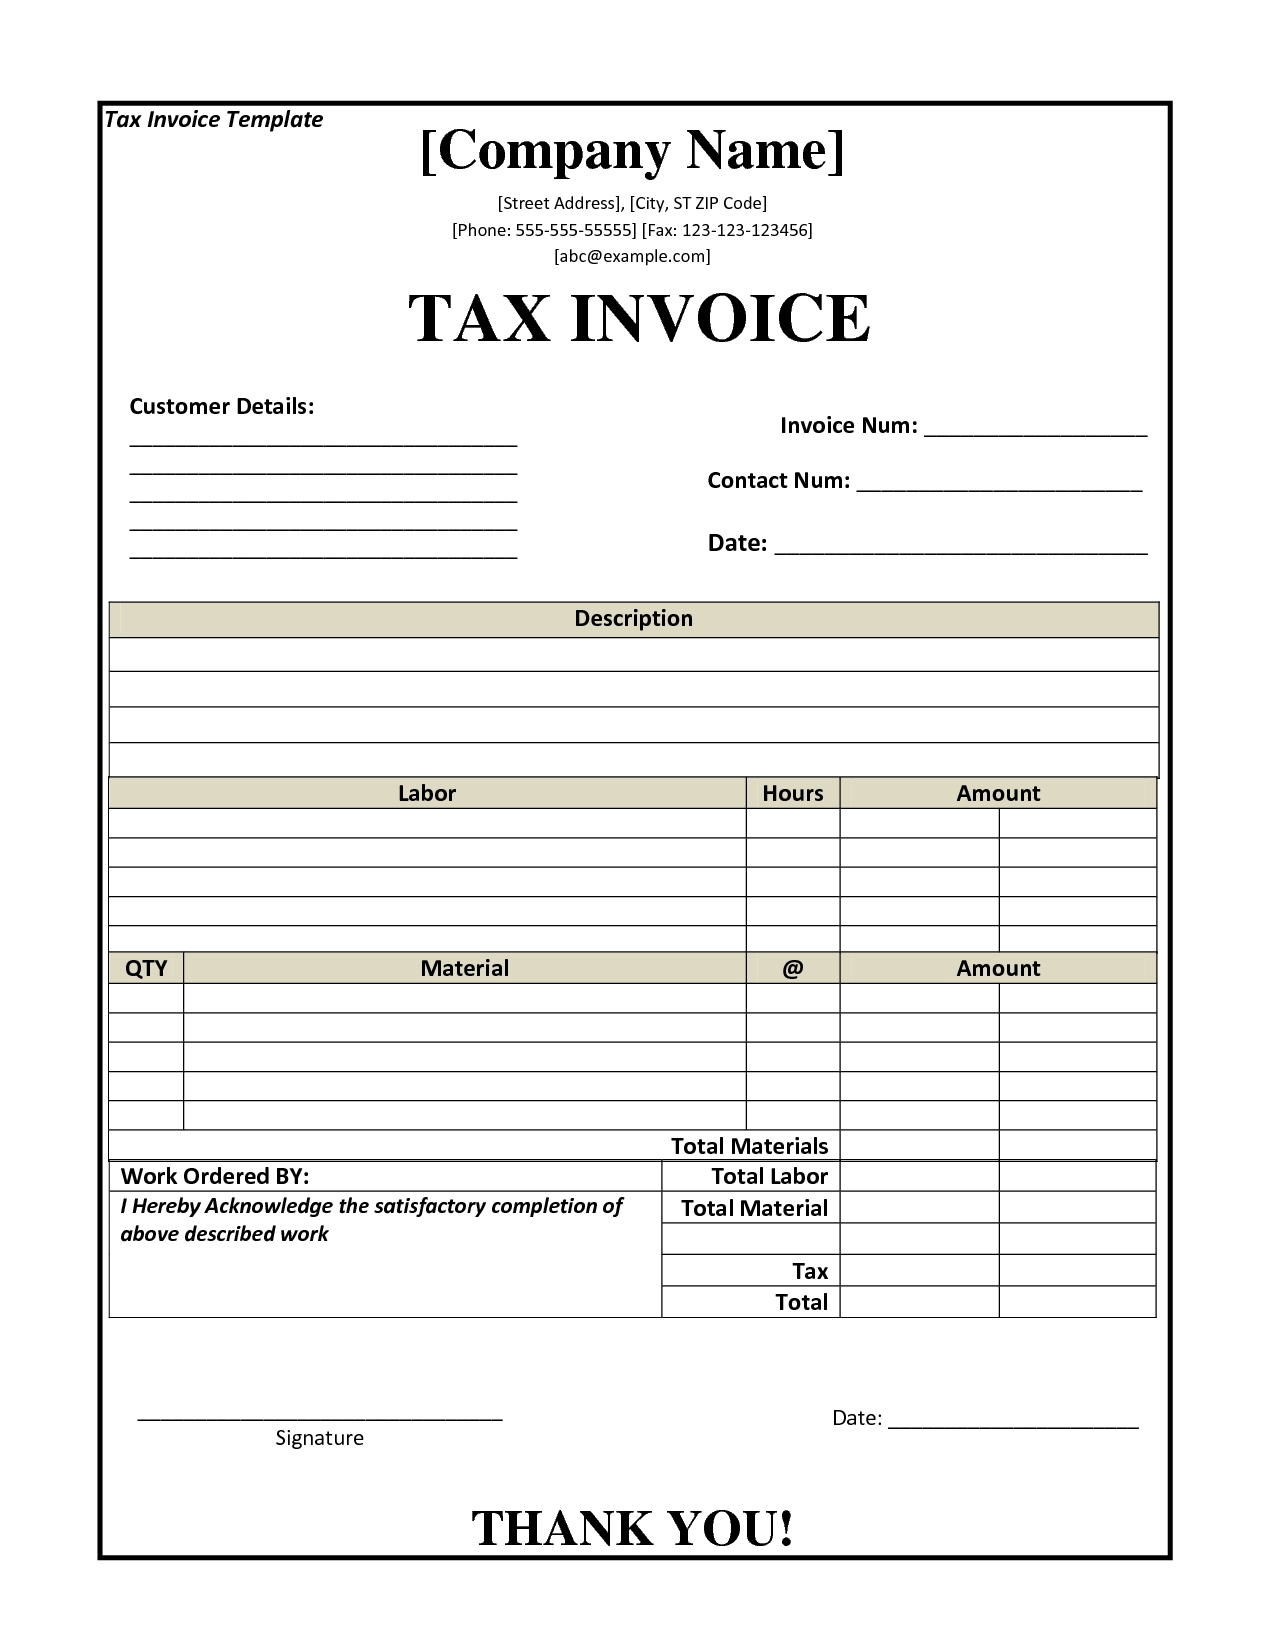 ato tax invoice template invoice example example of a tax invoice